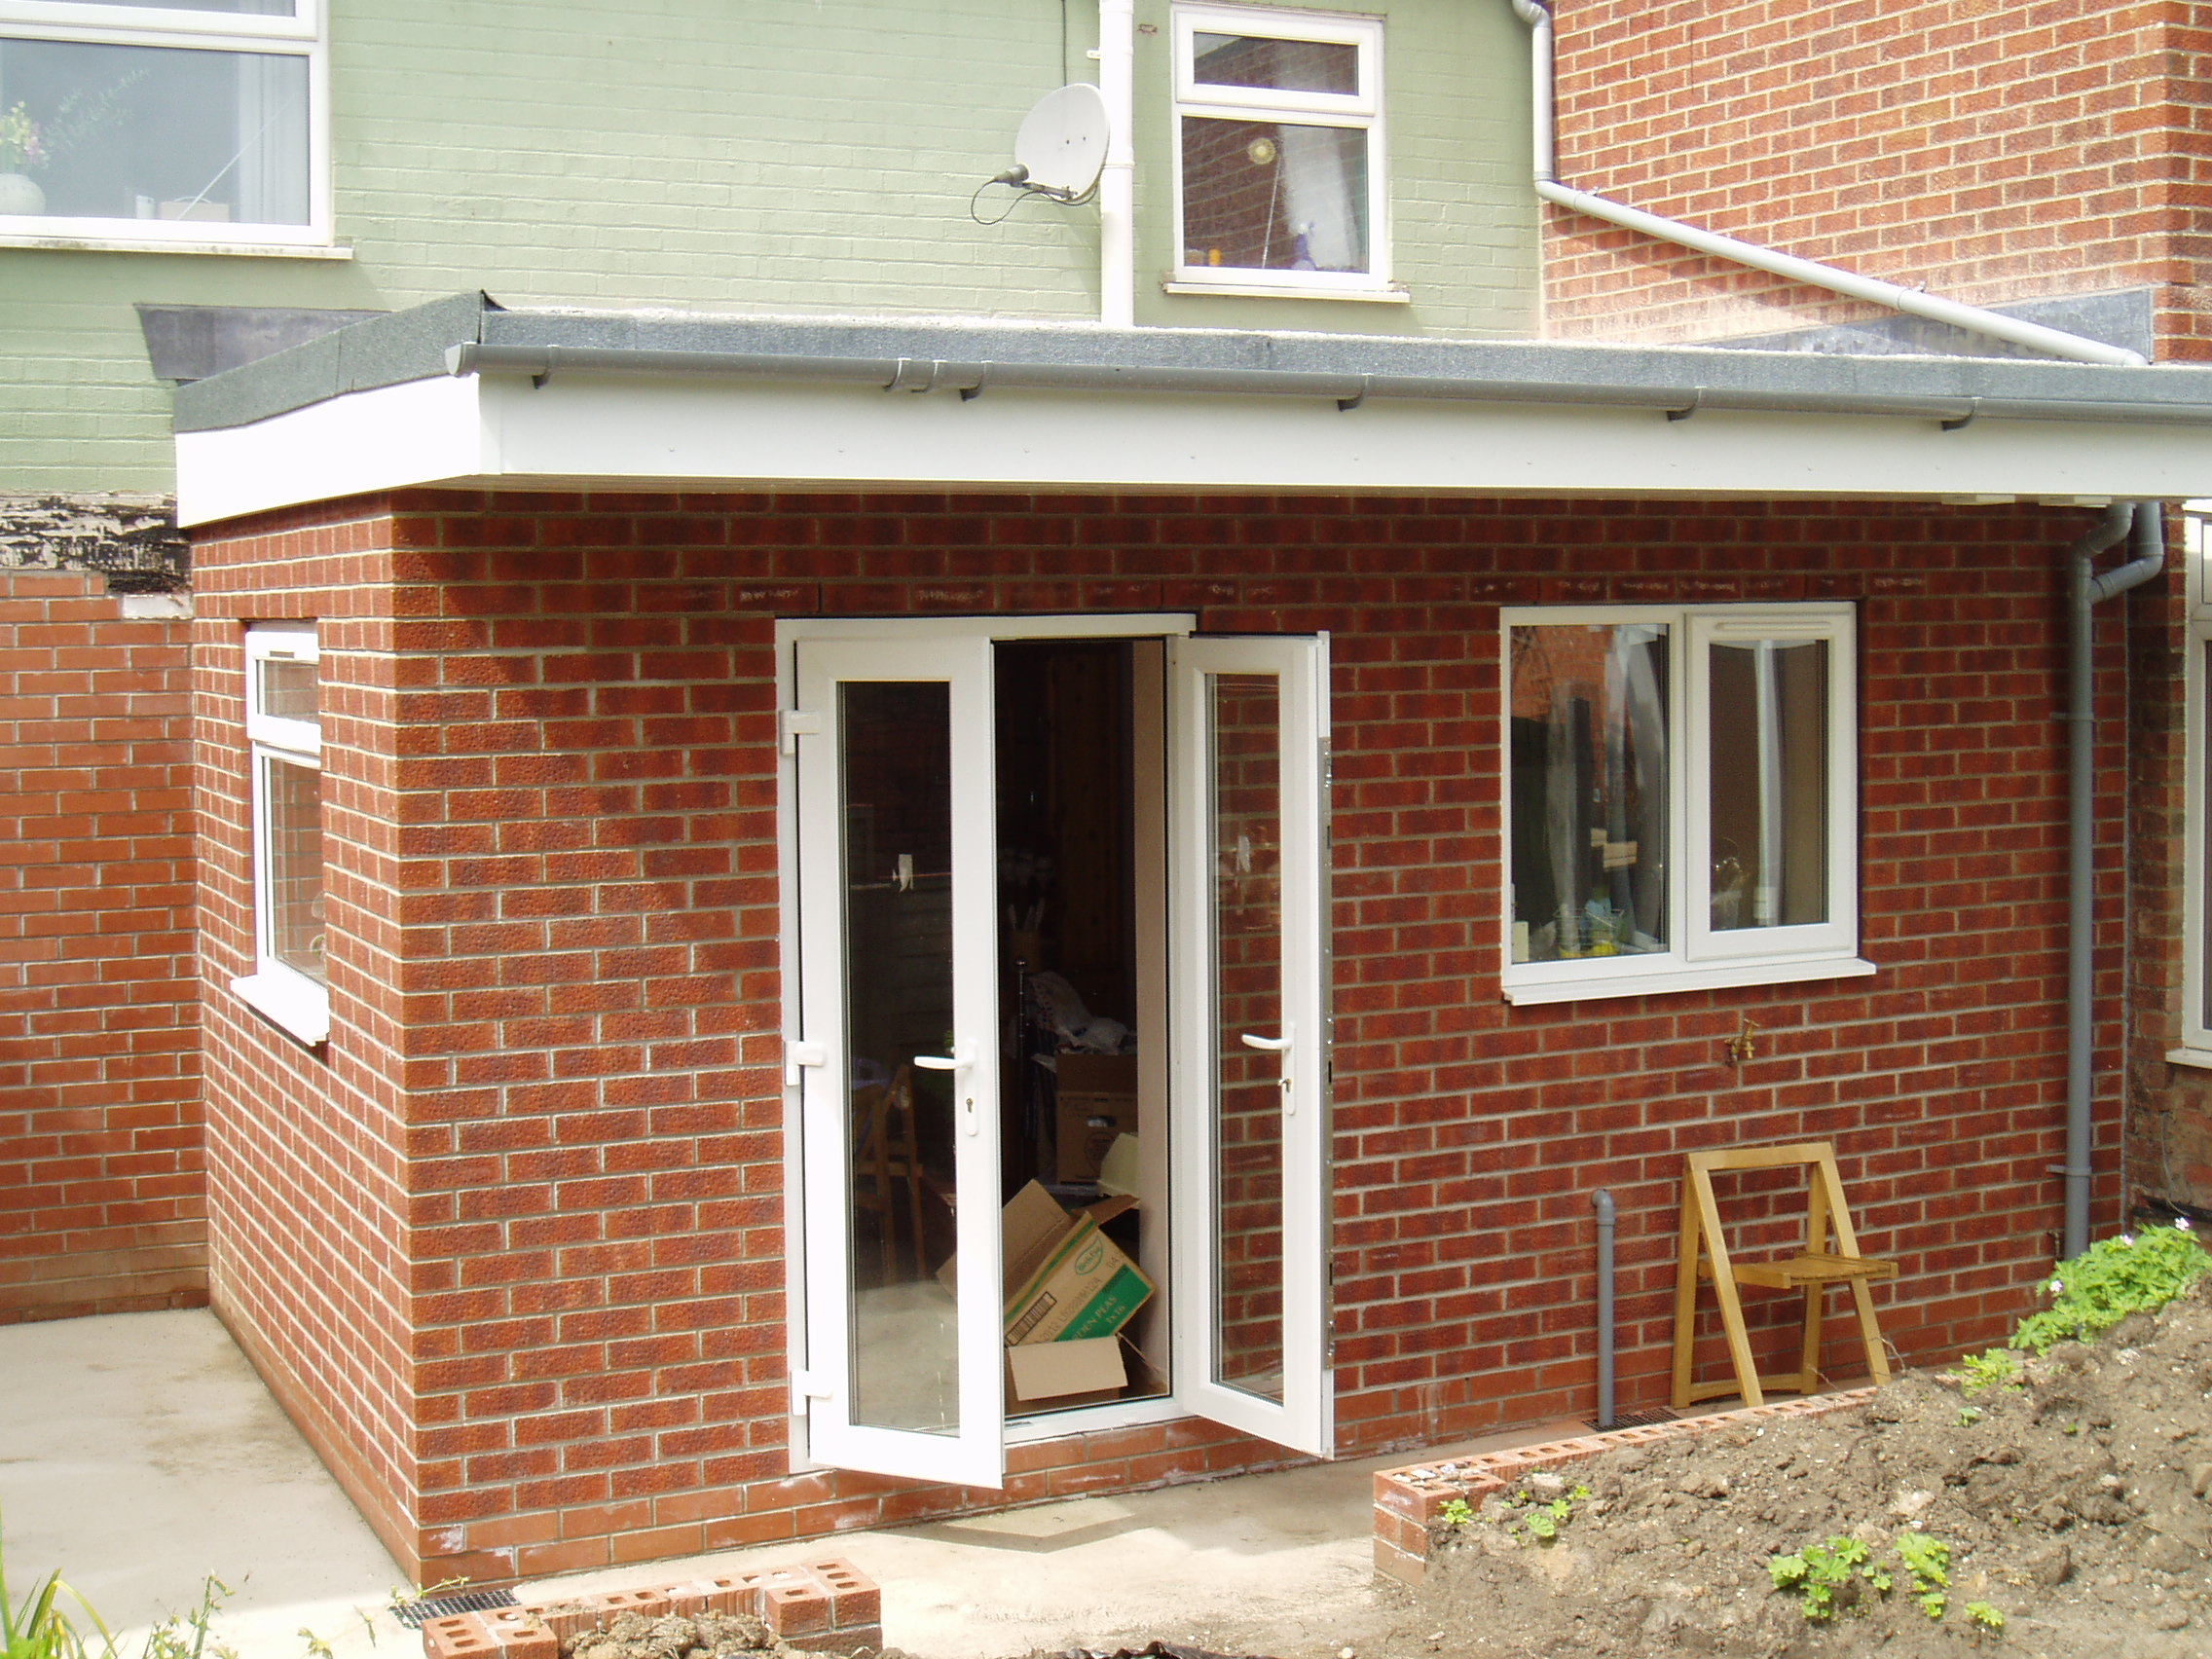 Preston hull Home extension OLYMPUS DIGITAL CAMERA. Preston hull Home Extension builder   Total Improvements Limited